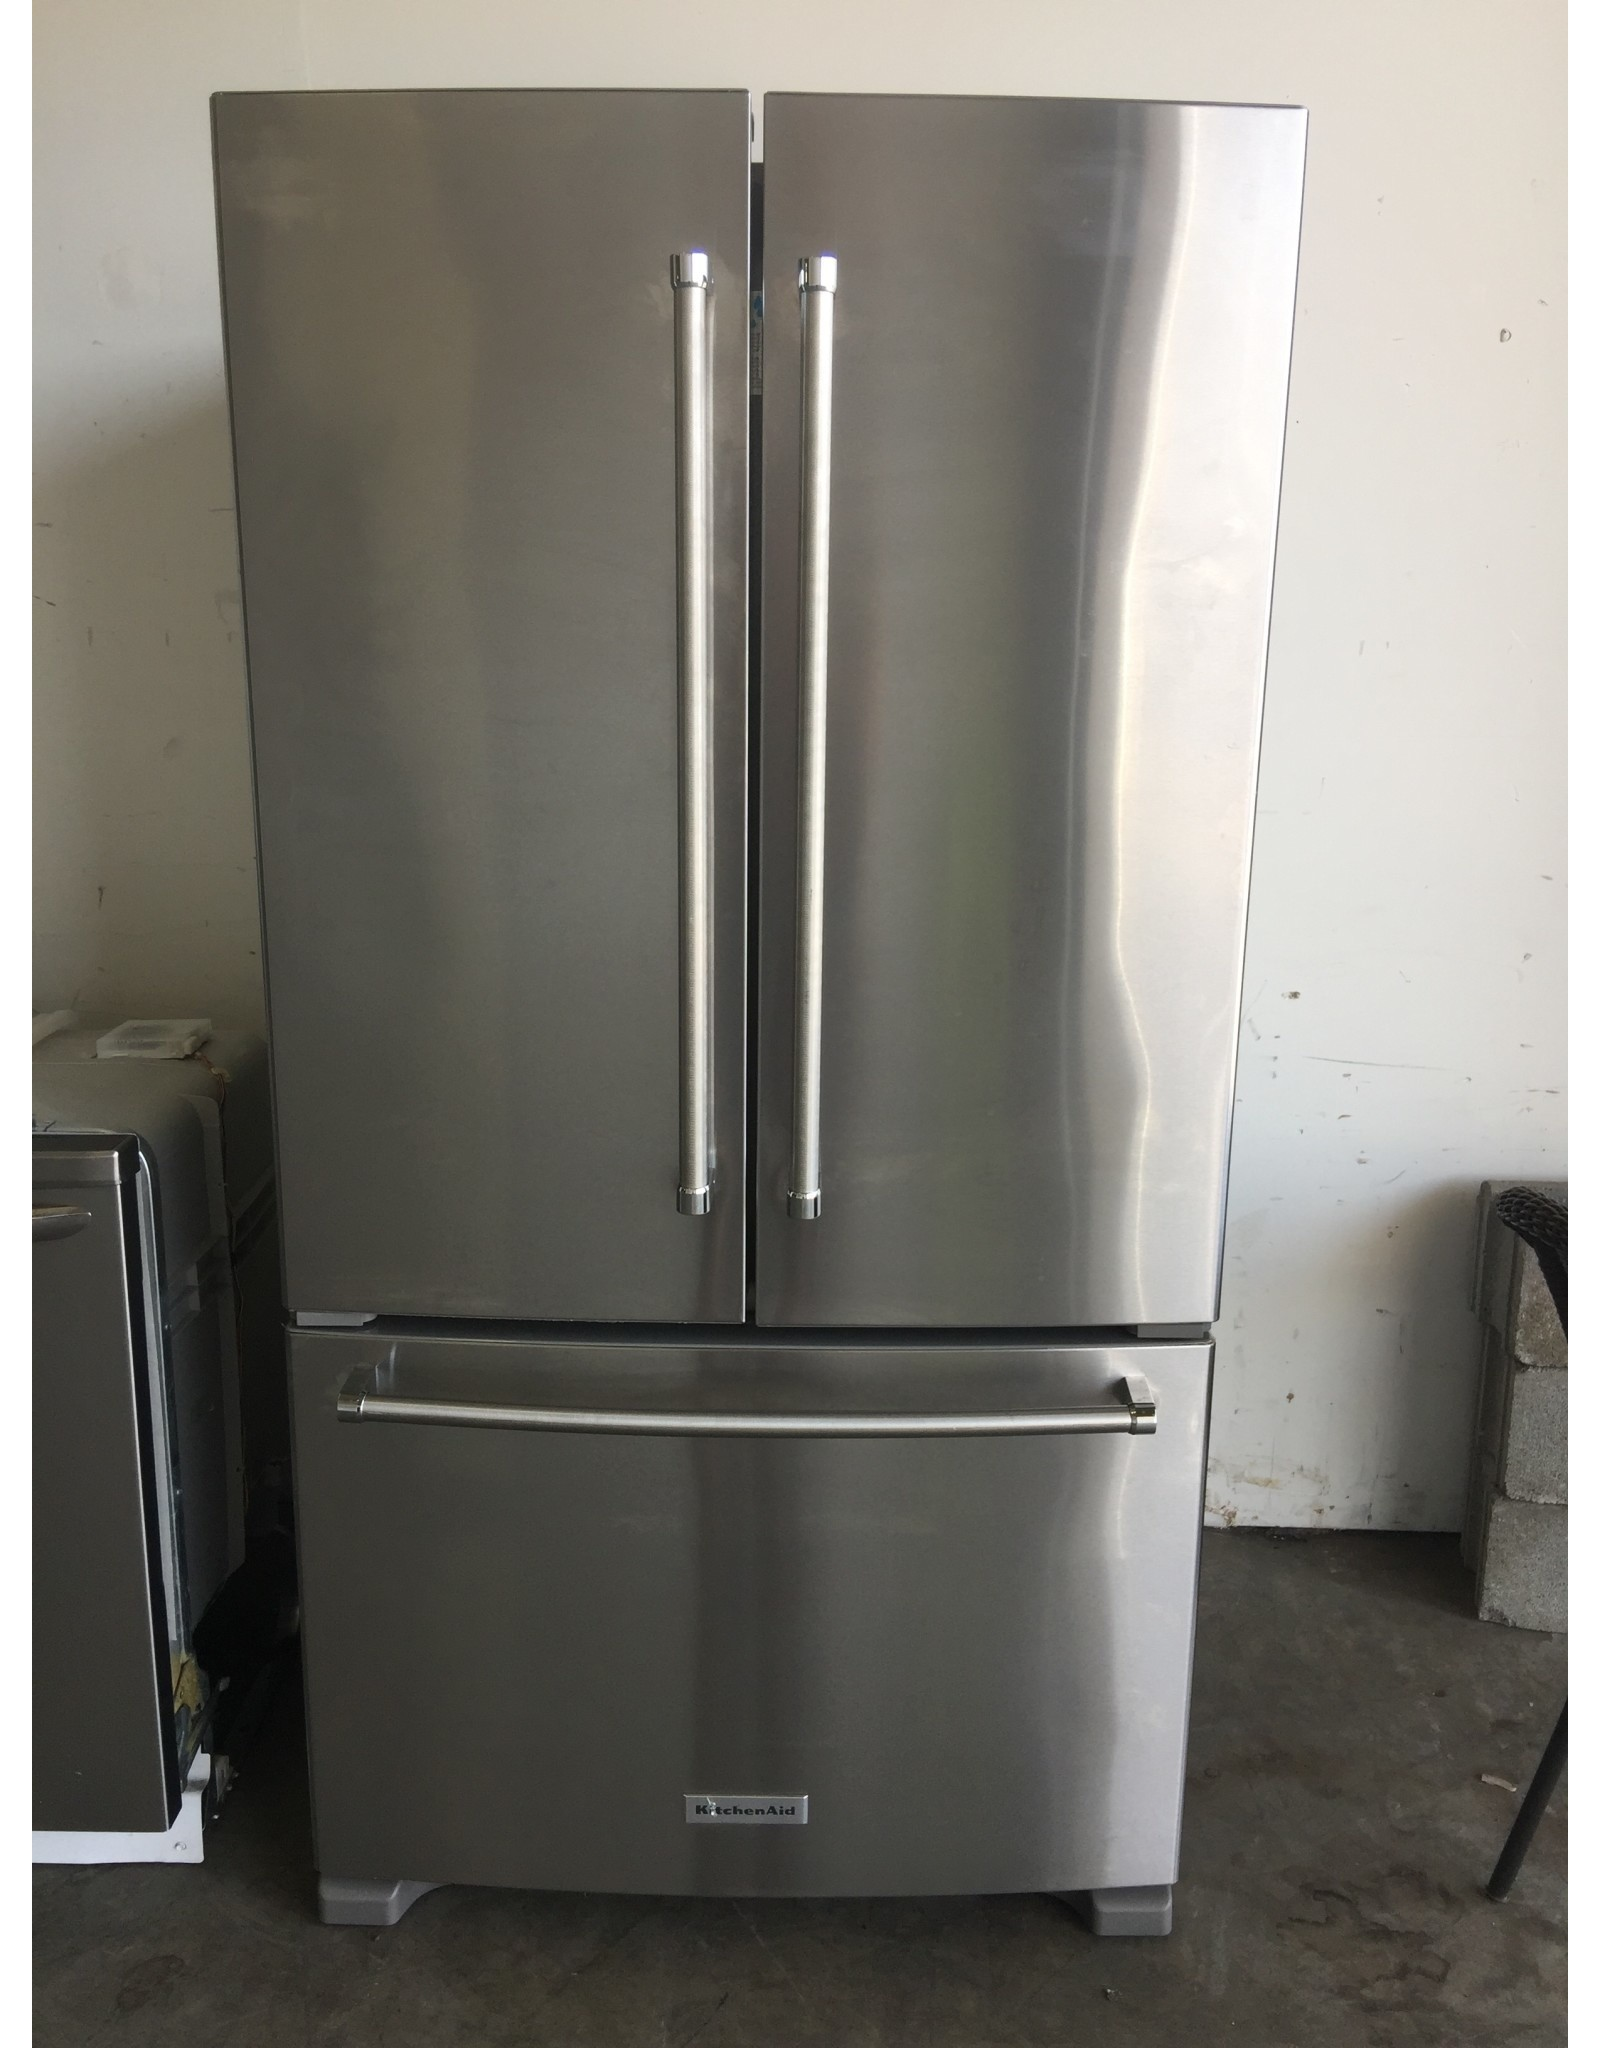 KITCHENAID KITCHENAID STAINLESS FRENCH DOOR REFRIGERATOR W/ICE MAKER & INSIDE WATER